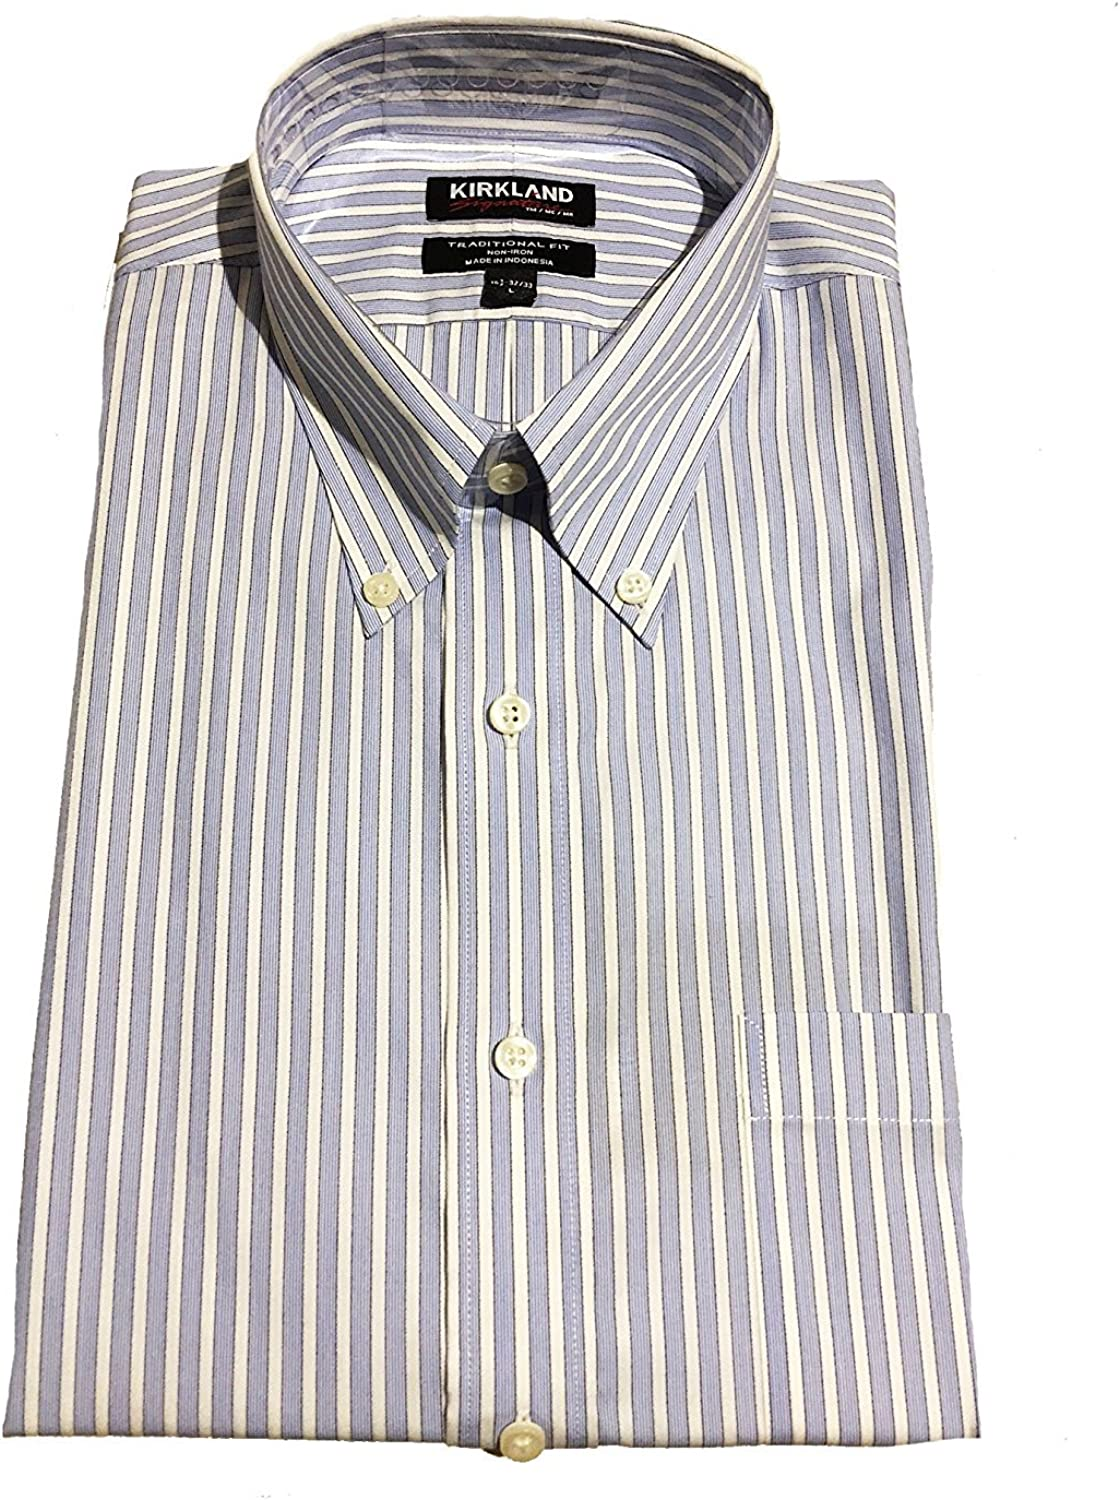 Kirkland Signature Button Up Dress Shirt Green//Blue//White Striped Various Sizes